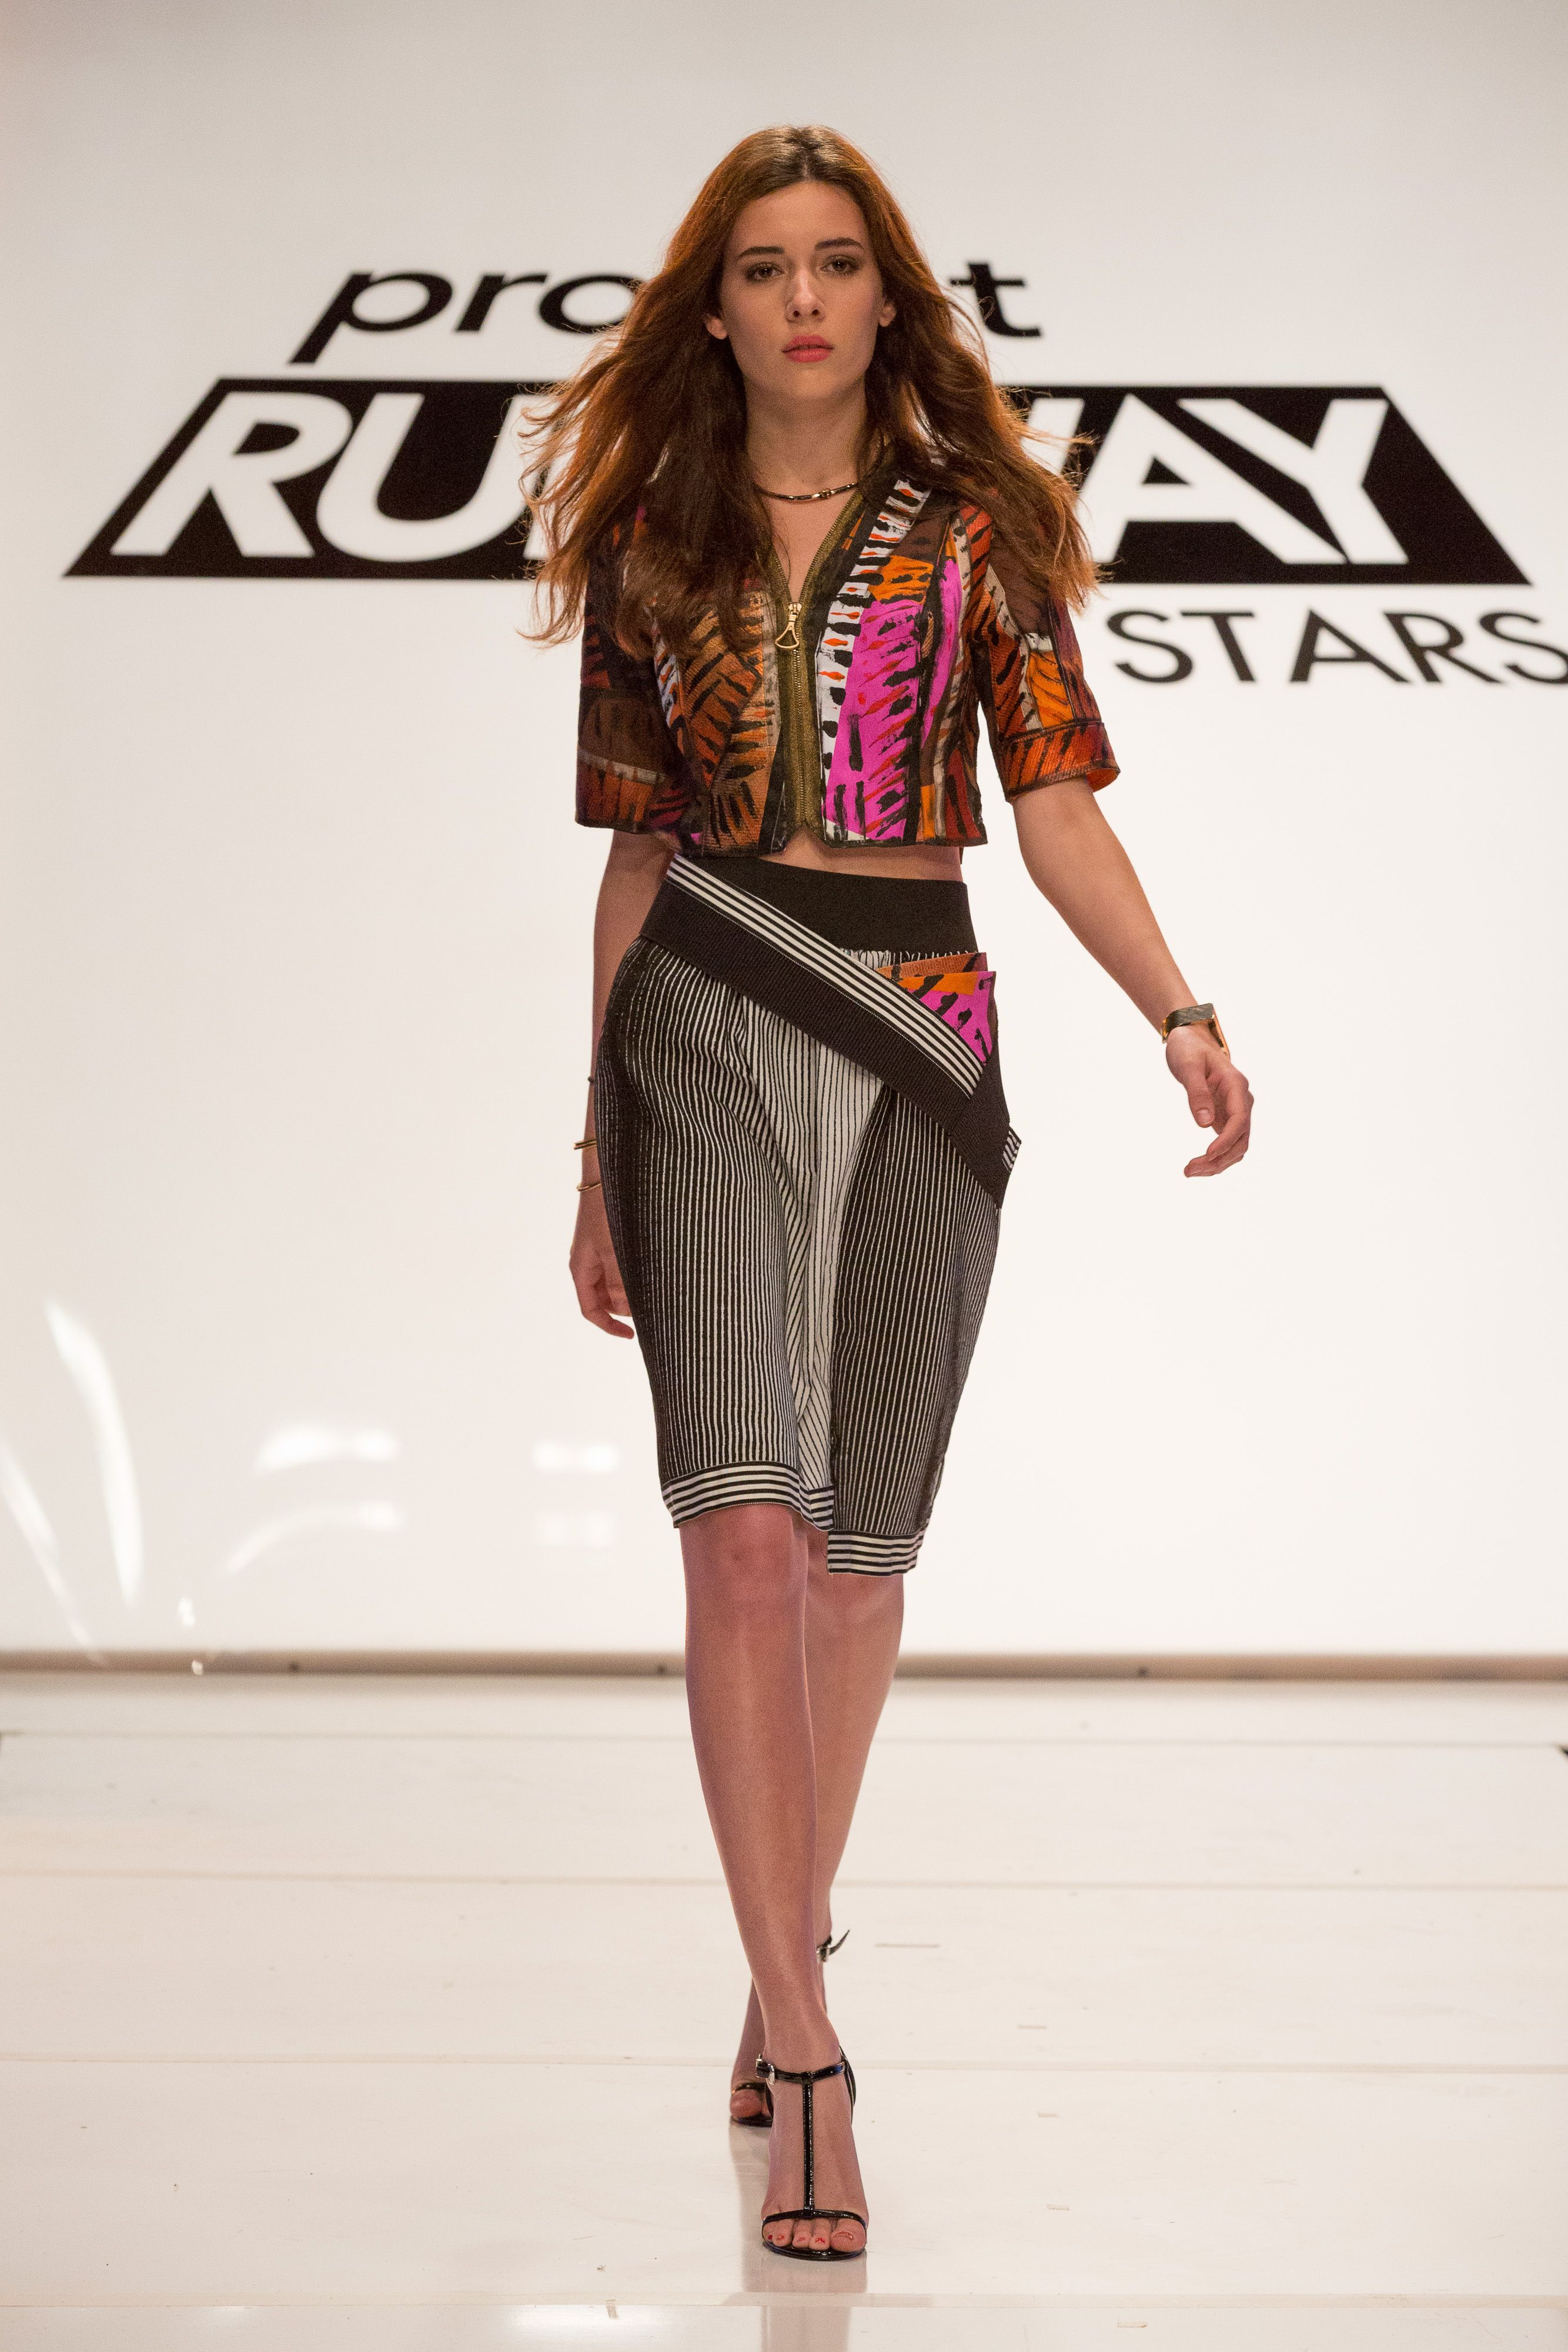 a1bdf900887 Another great look brought to life.  BrotherLovesFashion  PRAllStars   FashionDesign  Sewing